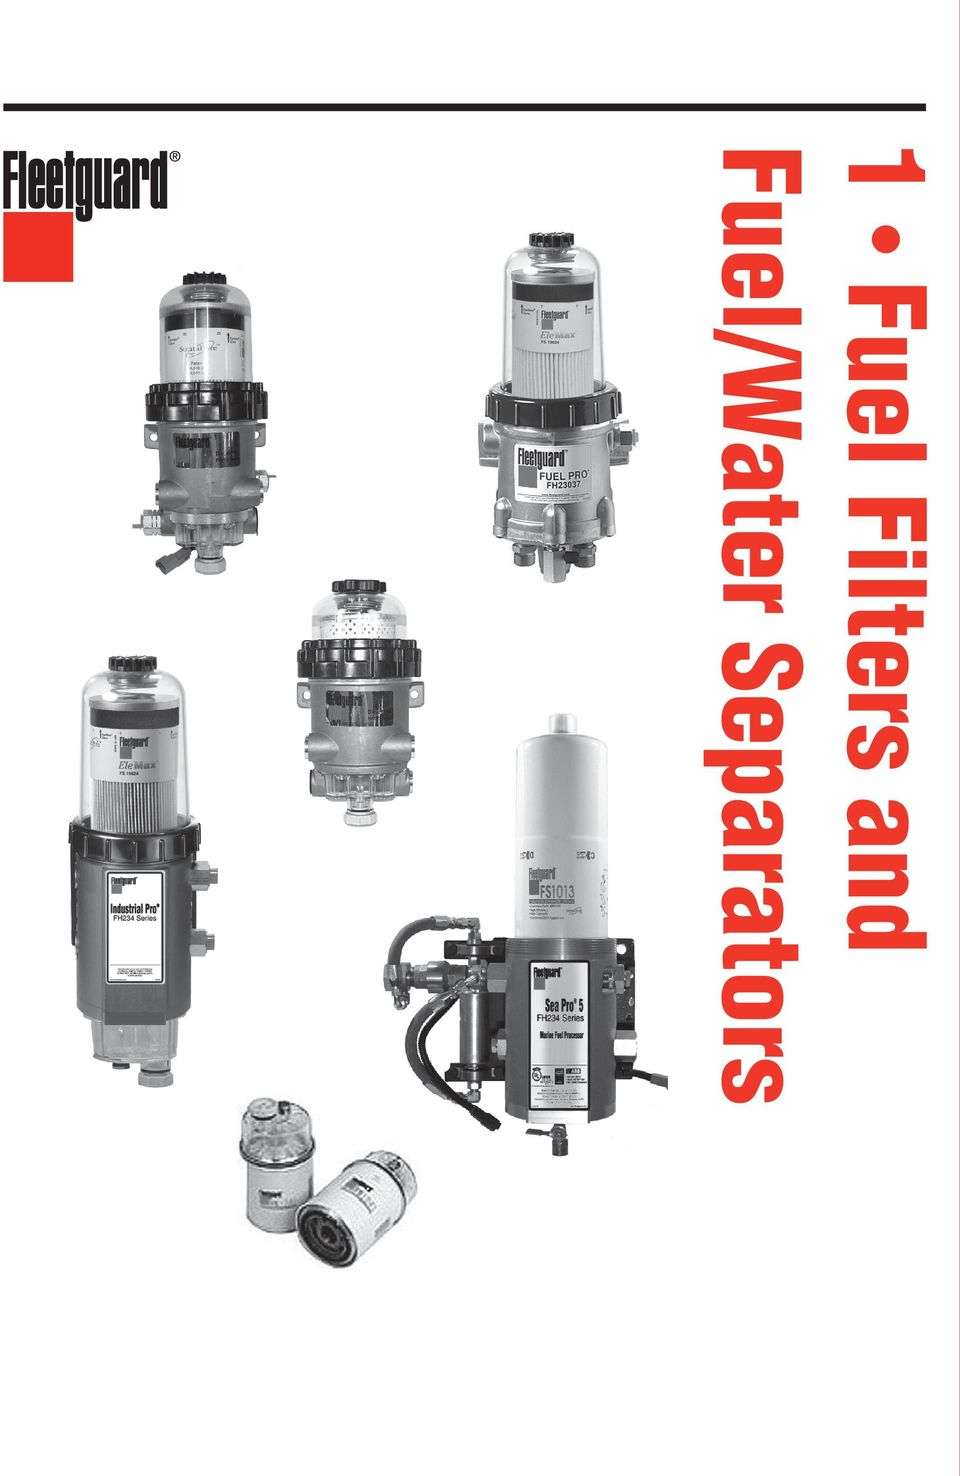 medium resolution of  fuel filtration systems by engine size filter elements by engine application fuel filter elements diverter caps diesel pro diesel pro water in fuel